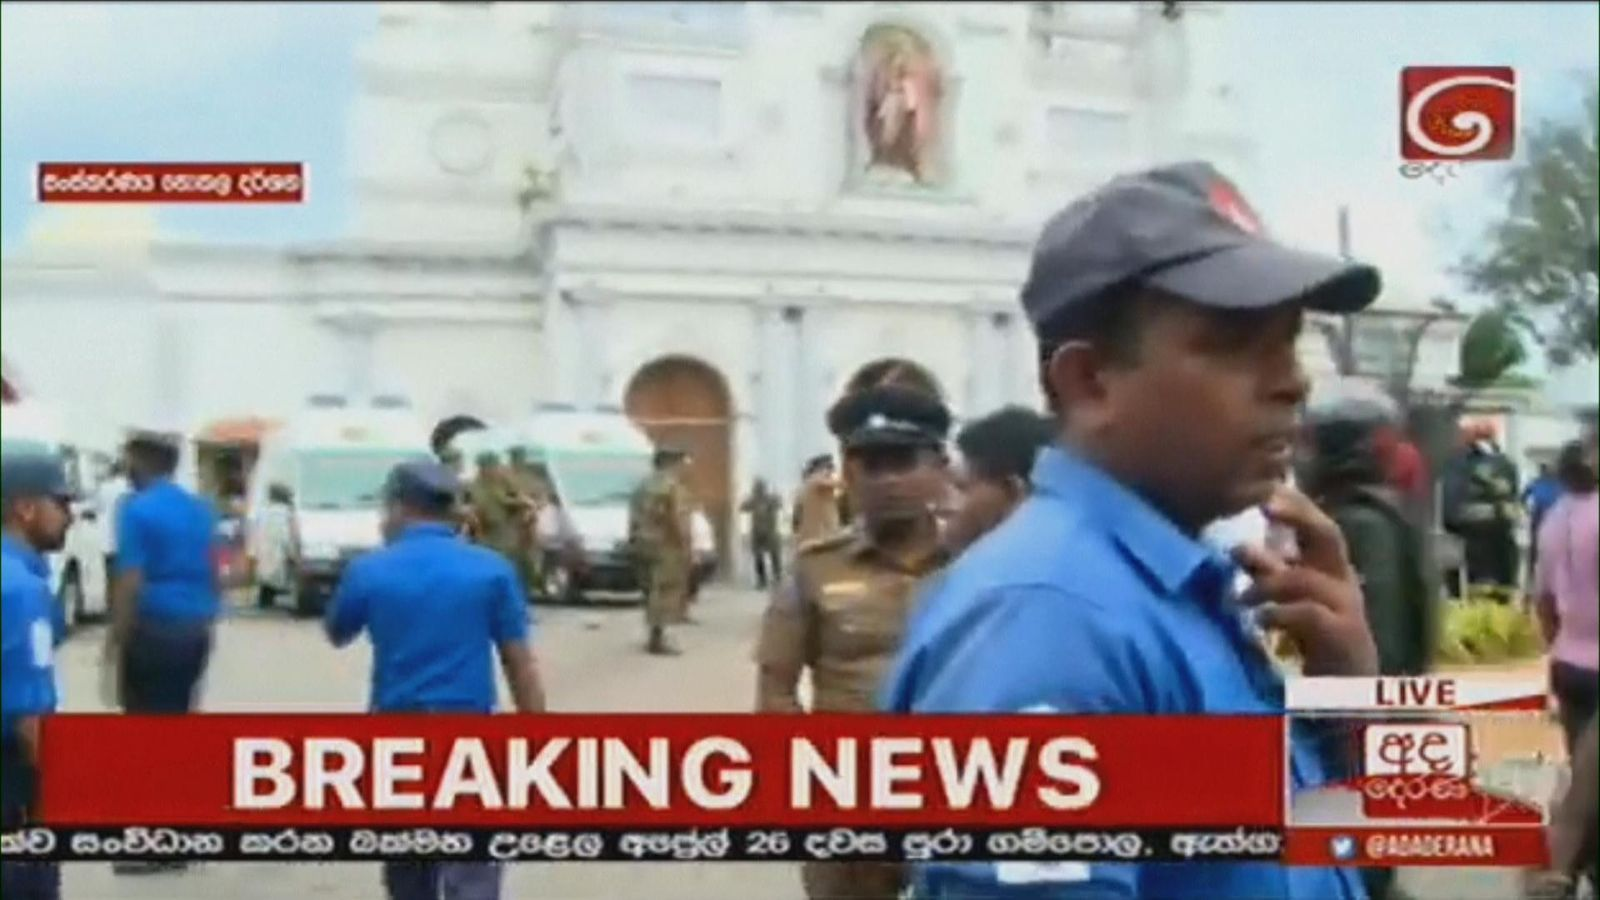 Explosions at churches and hotels in Sri Lanka - reports